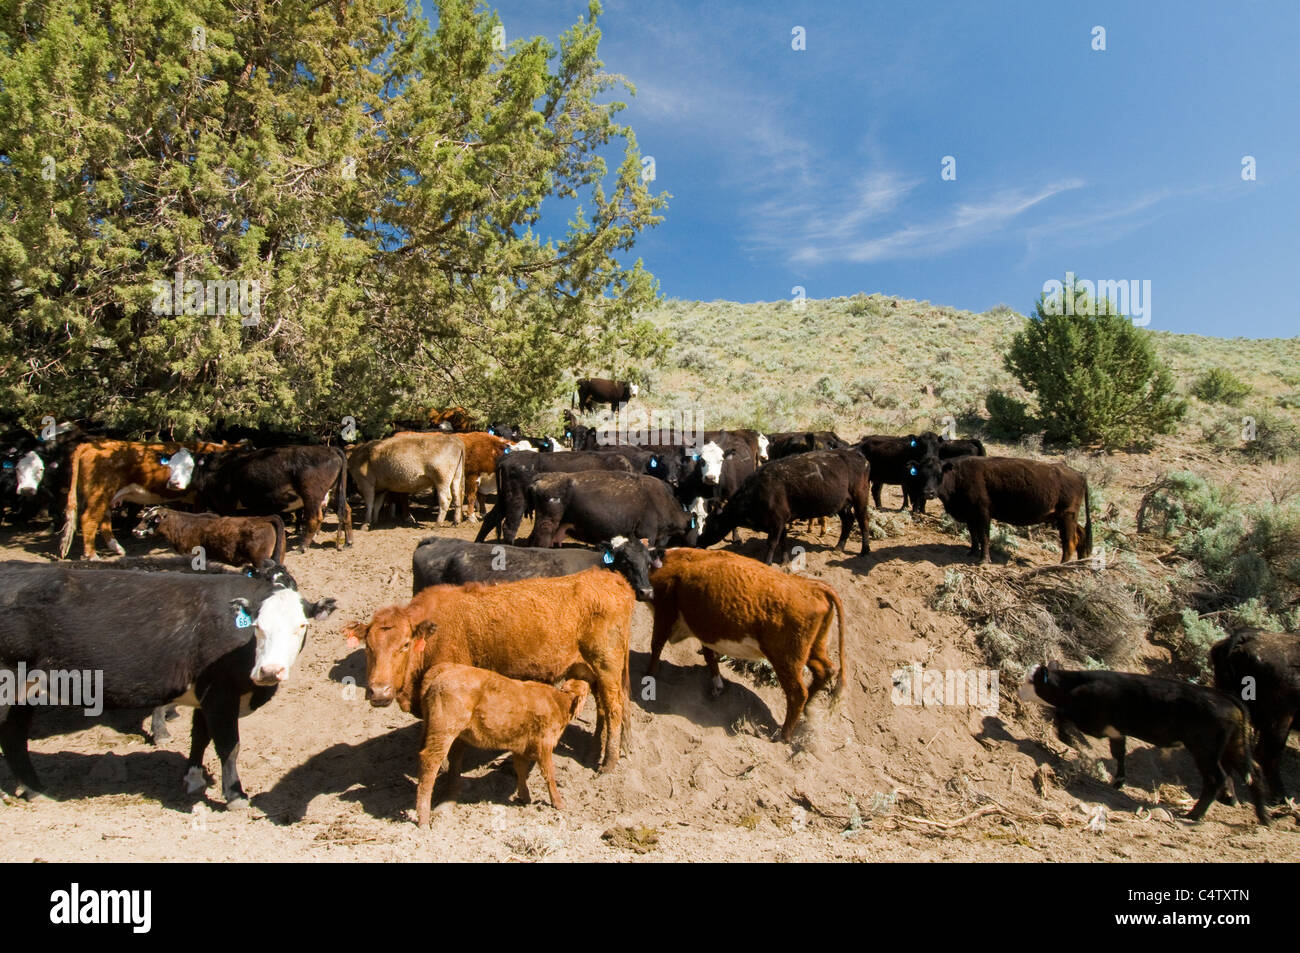 Cattle overgrazing on public lands administered by the Bureau of Land Management in SW Idaho - Stock Image